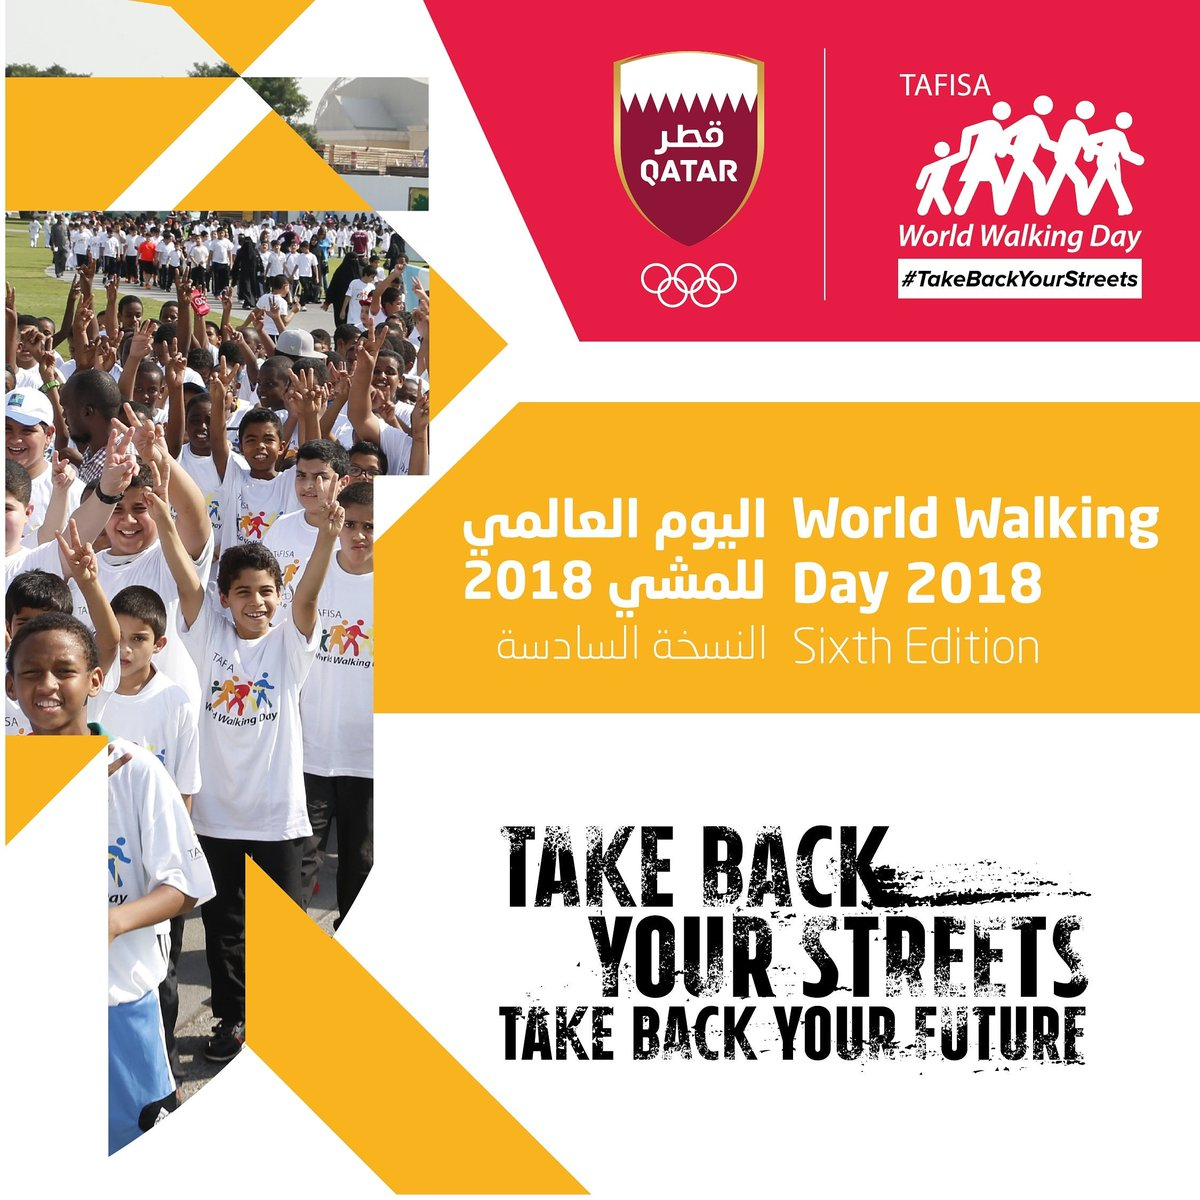 Join us this Thursday 25 October on the Corniche at 9:00AM to celebrate World Walking Day! It's never too late to make walking a part of your daily routine.  #Takebackyourstreets #YallaQatar #sportforlife